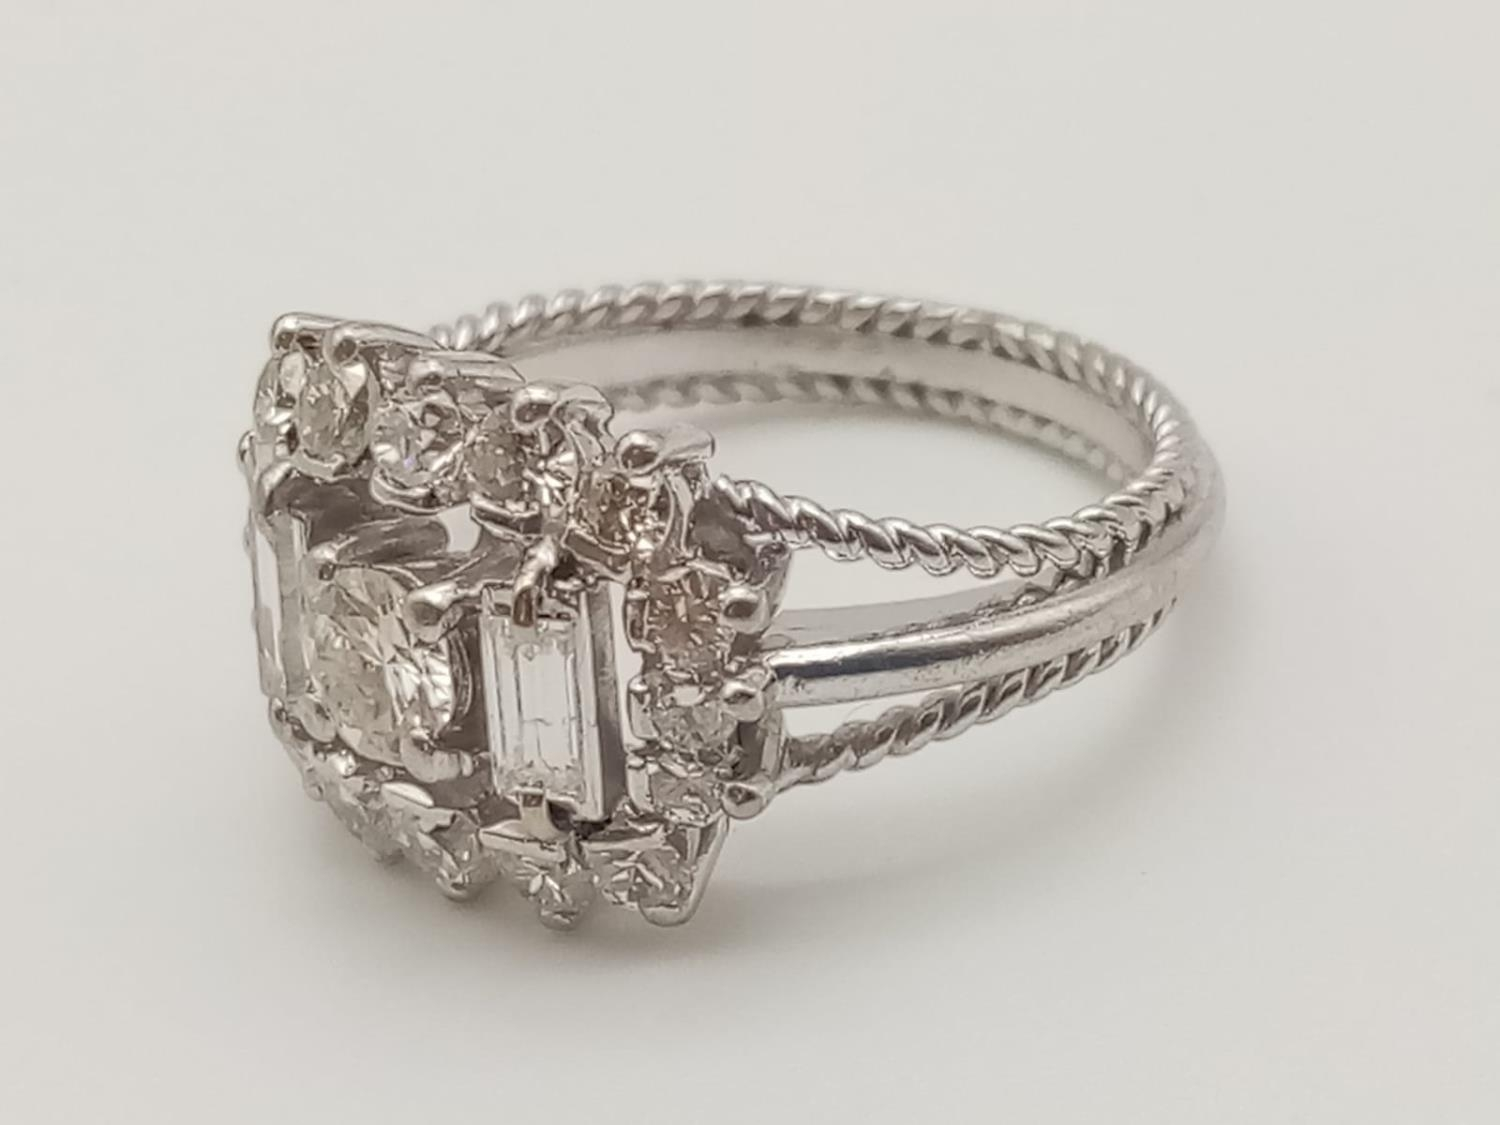 18k white gold diamond ring, WEIGHT 7.6G with over approx 2ct of top quality diamonds, size N1/2 - Image 2 of 6